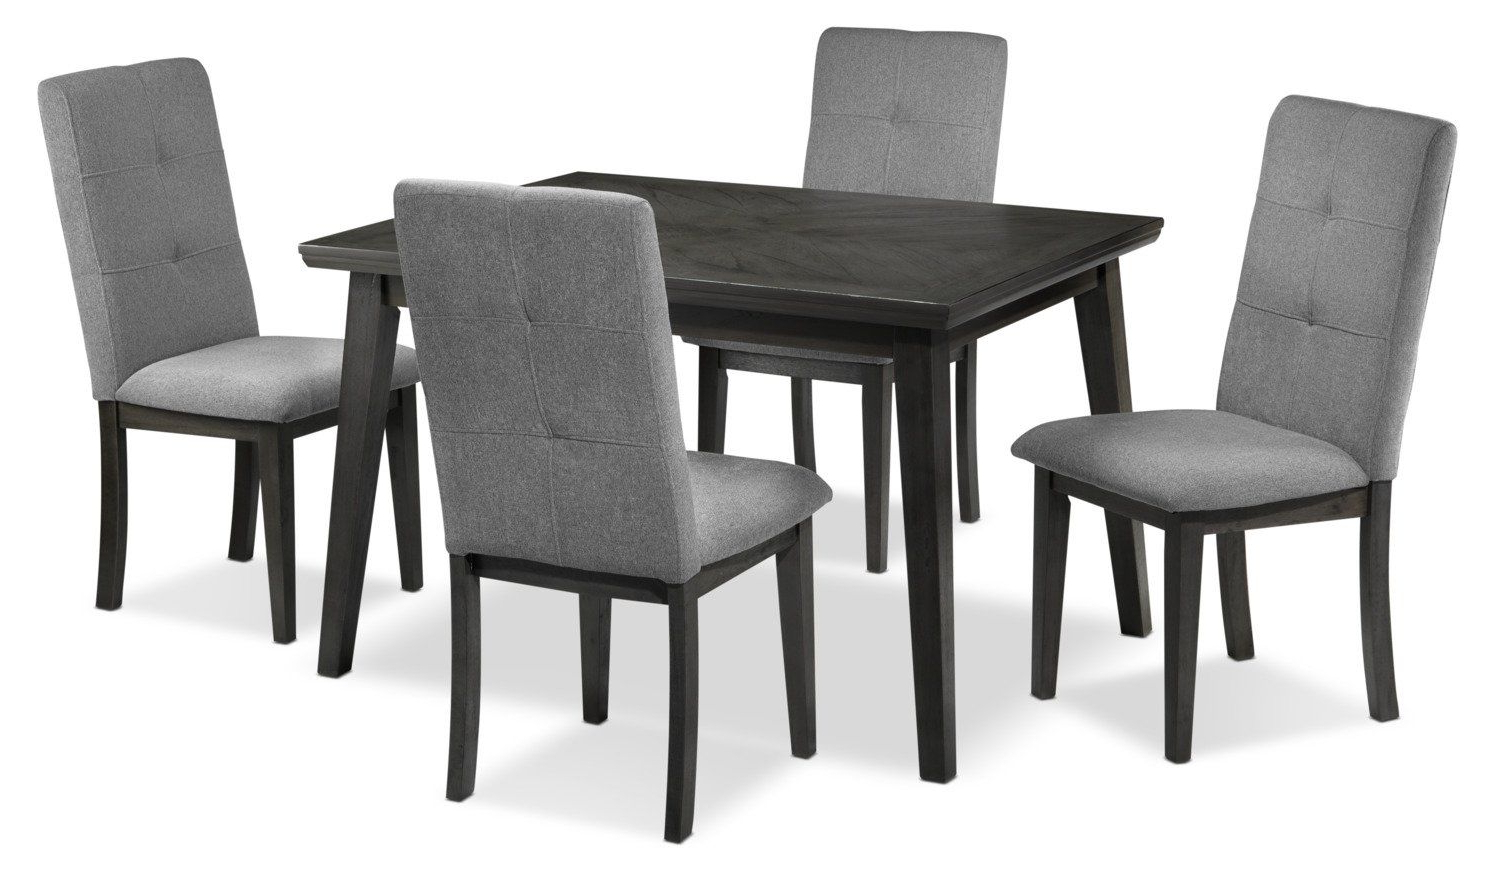 Dinette Sets Pertaining To Stouferberg 5 Piece Dining Sets (View 13 of 20)